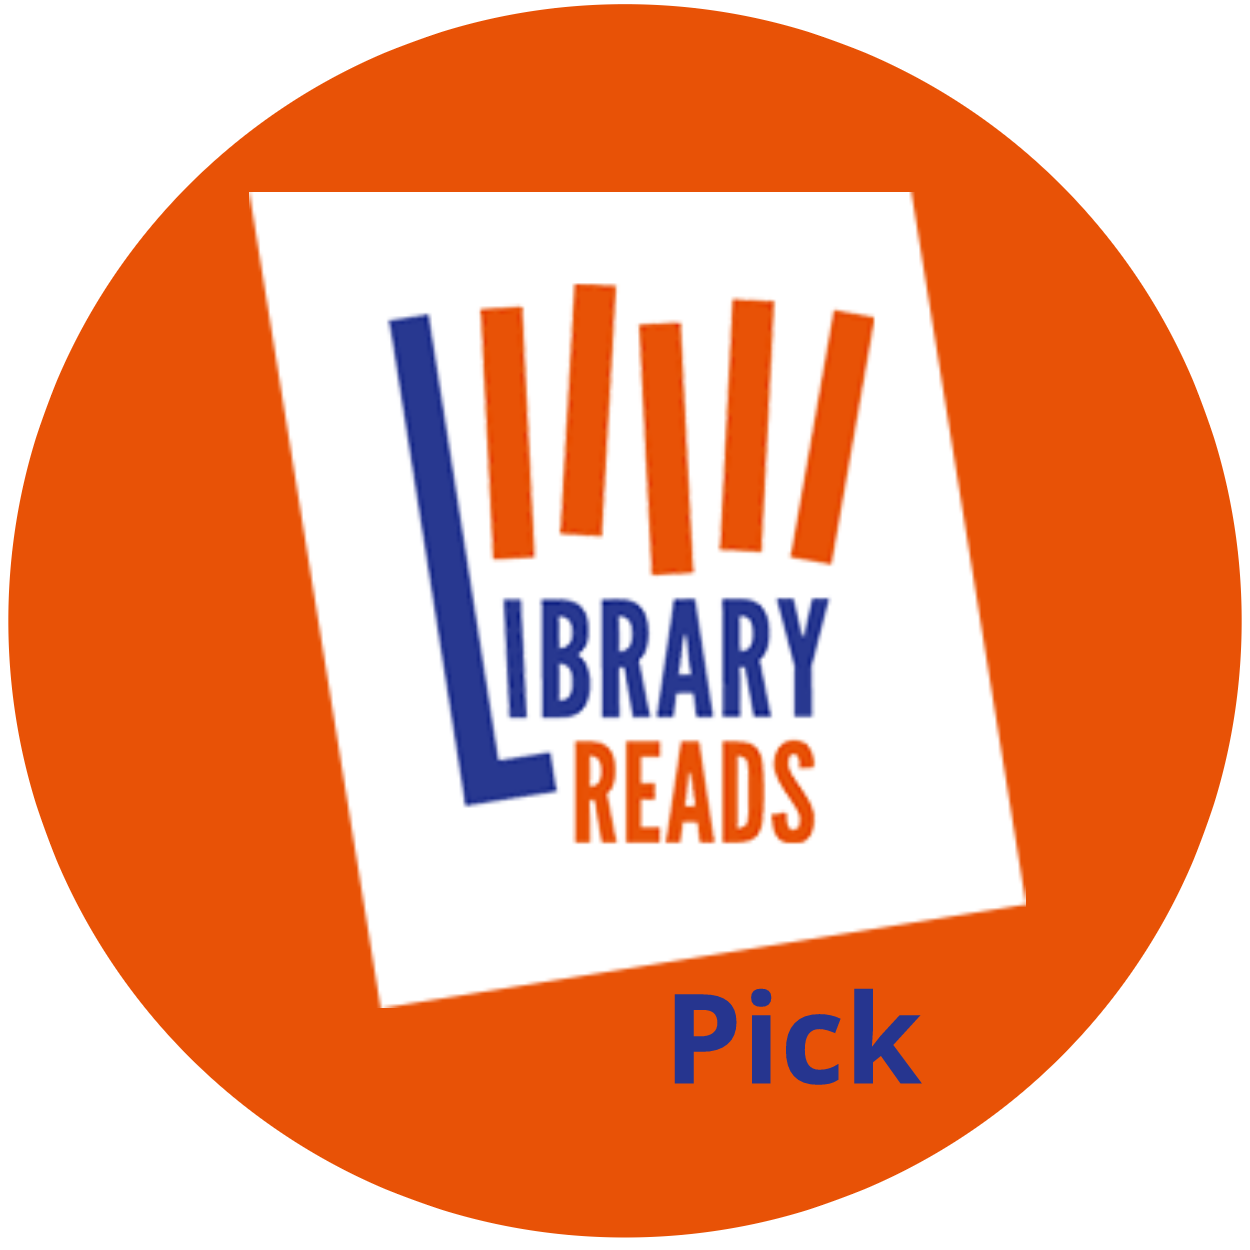 Library Reads Pick.png